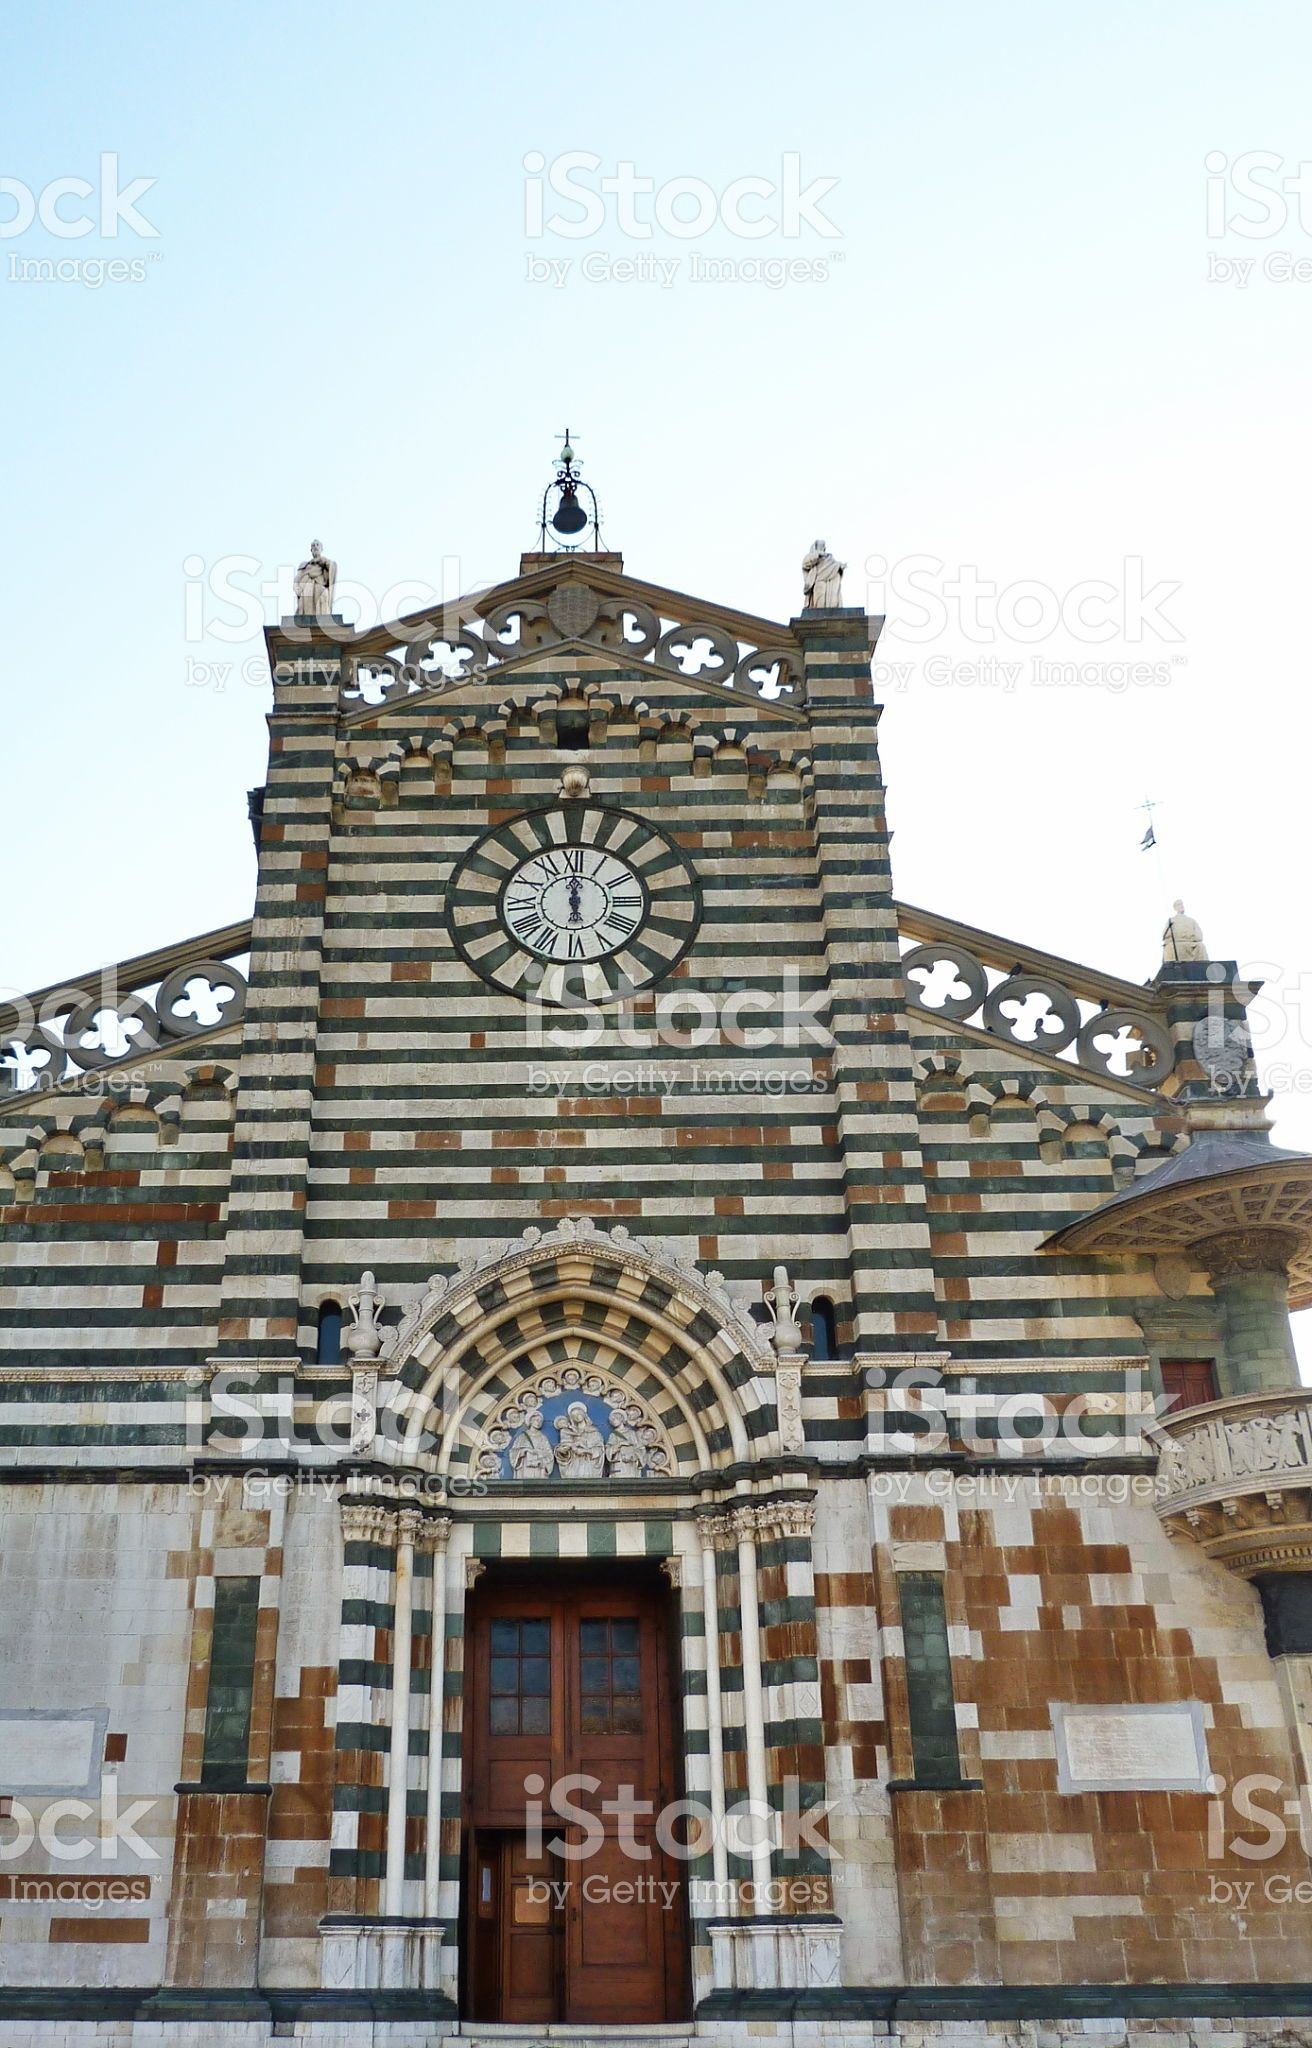 https://secure.istockphoto.com/photo/facade-of-the-cathedral-of-prato-tuscany-italy-gm544578696-97902483